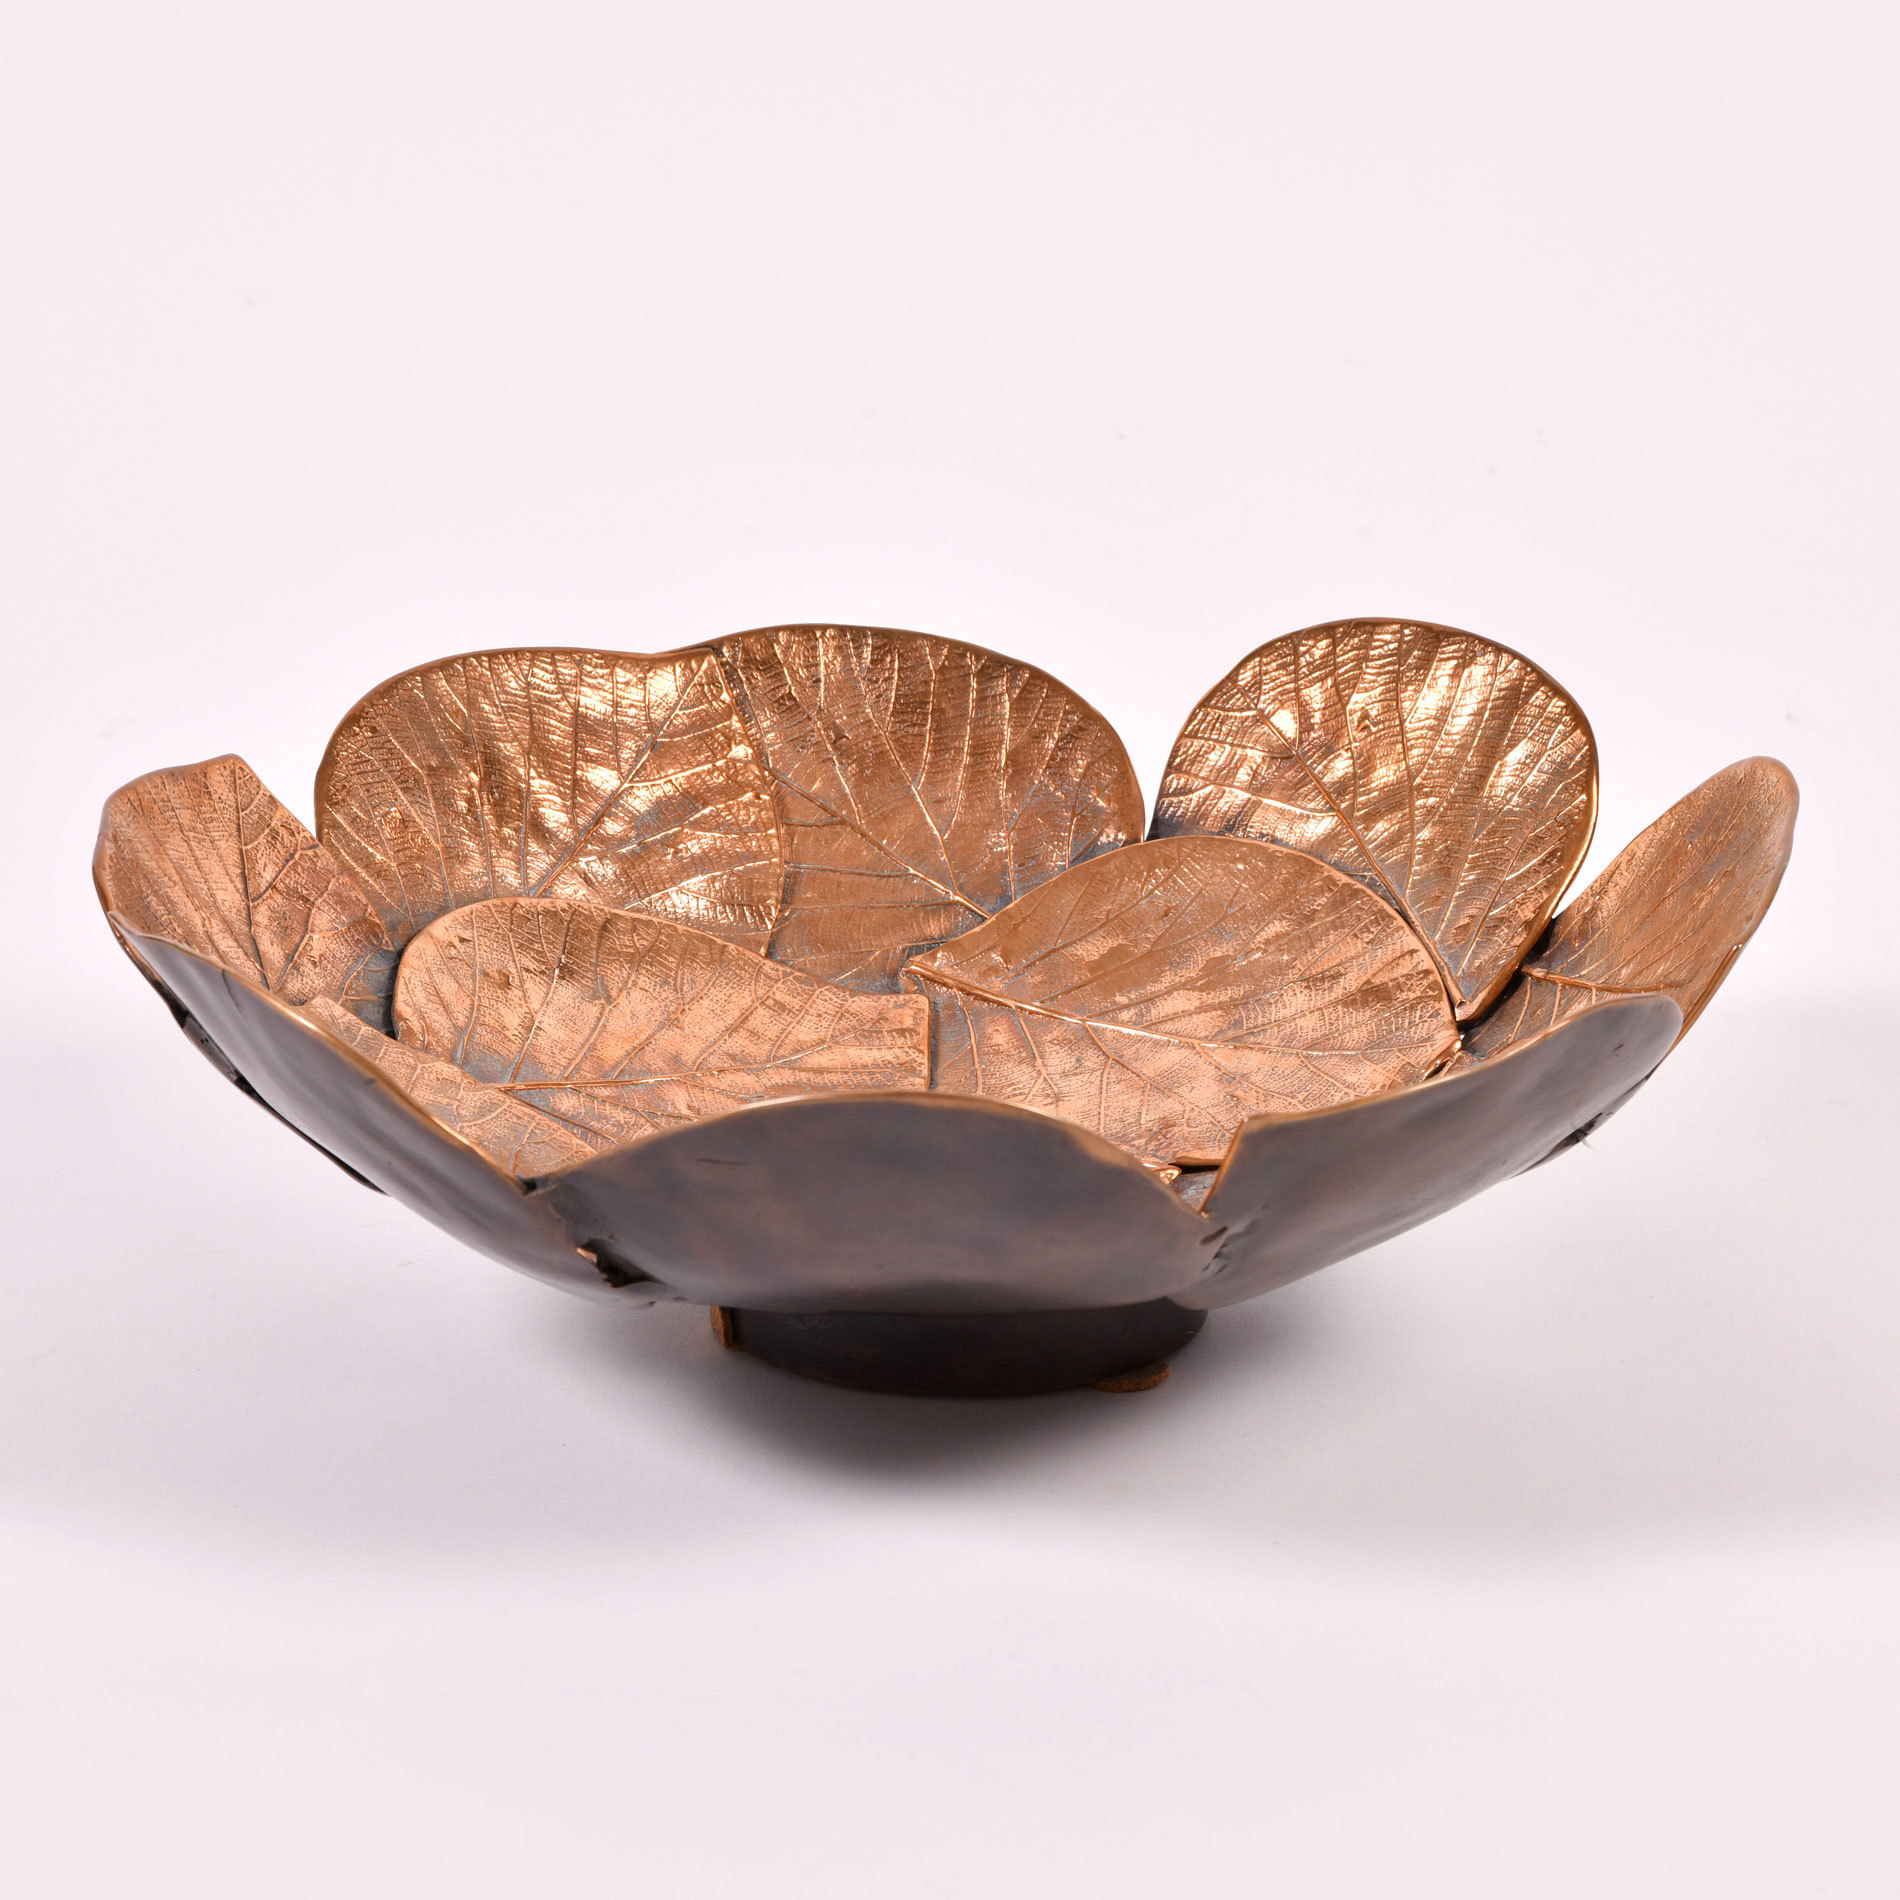 The image for Brass Leaf Bowl 01